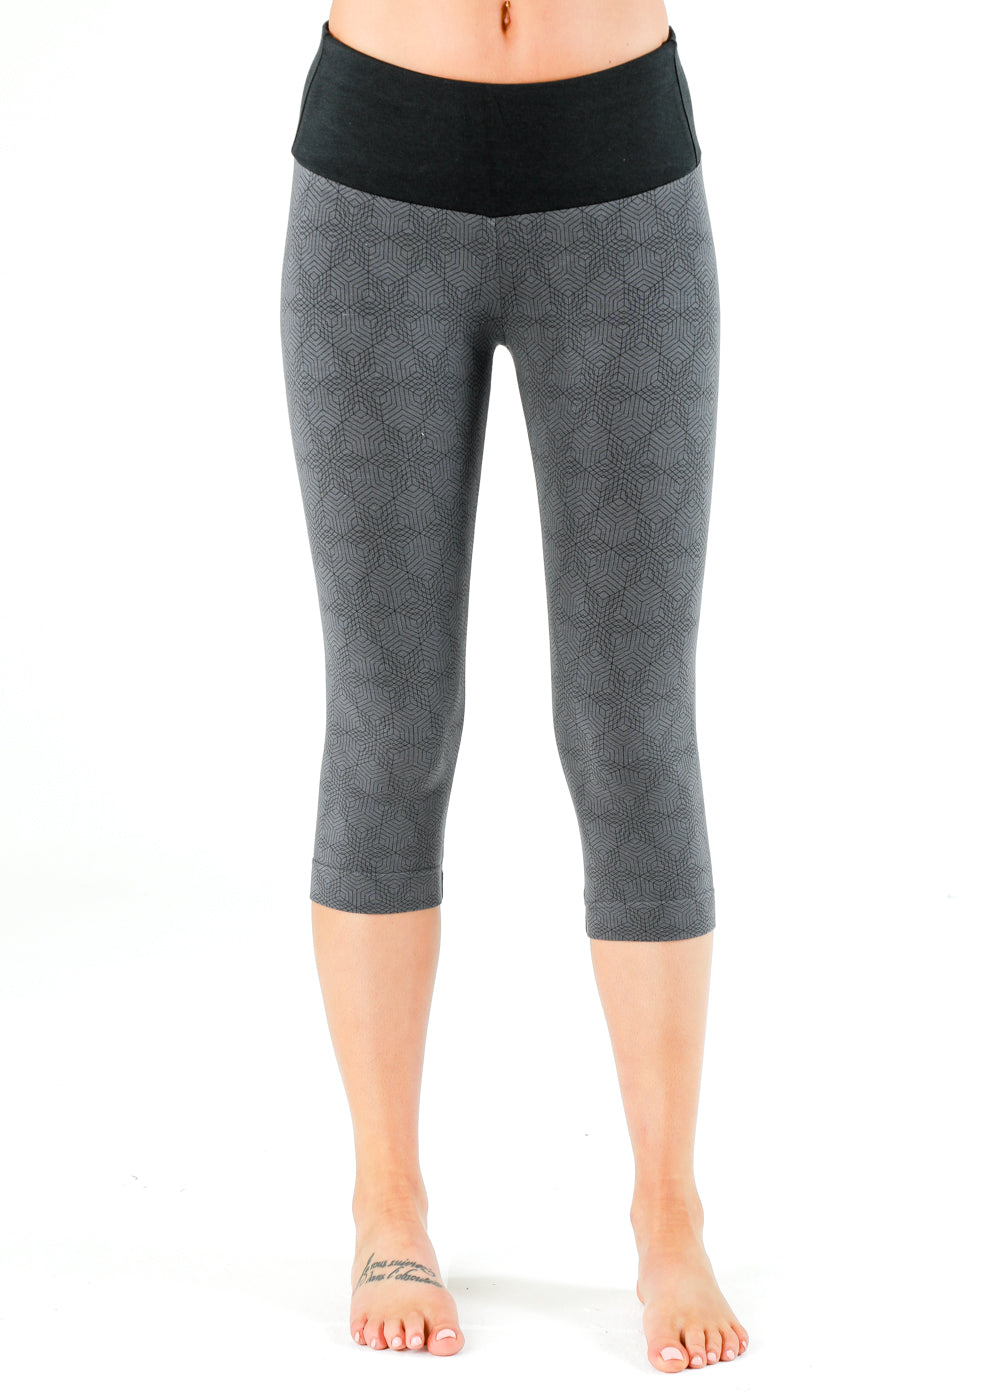 Spectrum grey with black hexagonal pattern capri yoga legging bamboo organic cotton